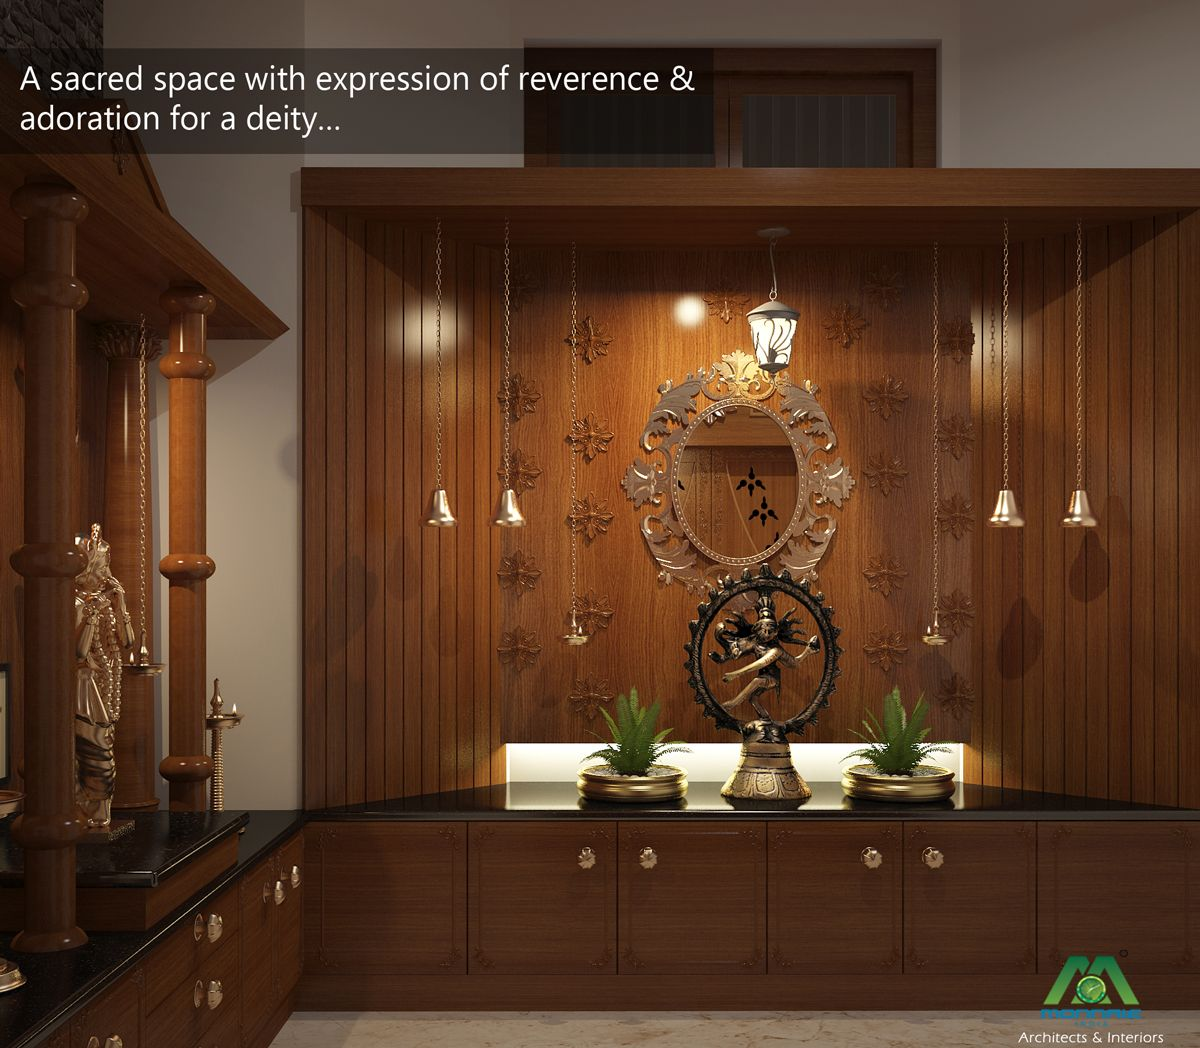 Interior Design For Kitchen In Kerala: A Sacred Space With Expression Of Reverence & Adoration For A Deity... Visit Us: Www.monnaie.in